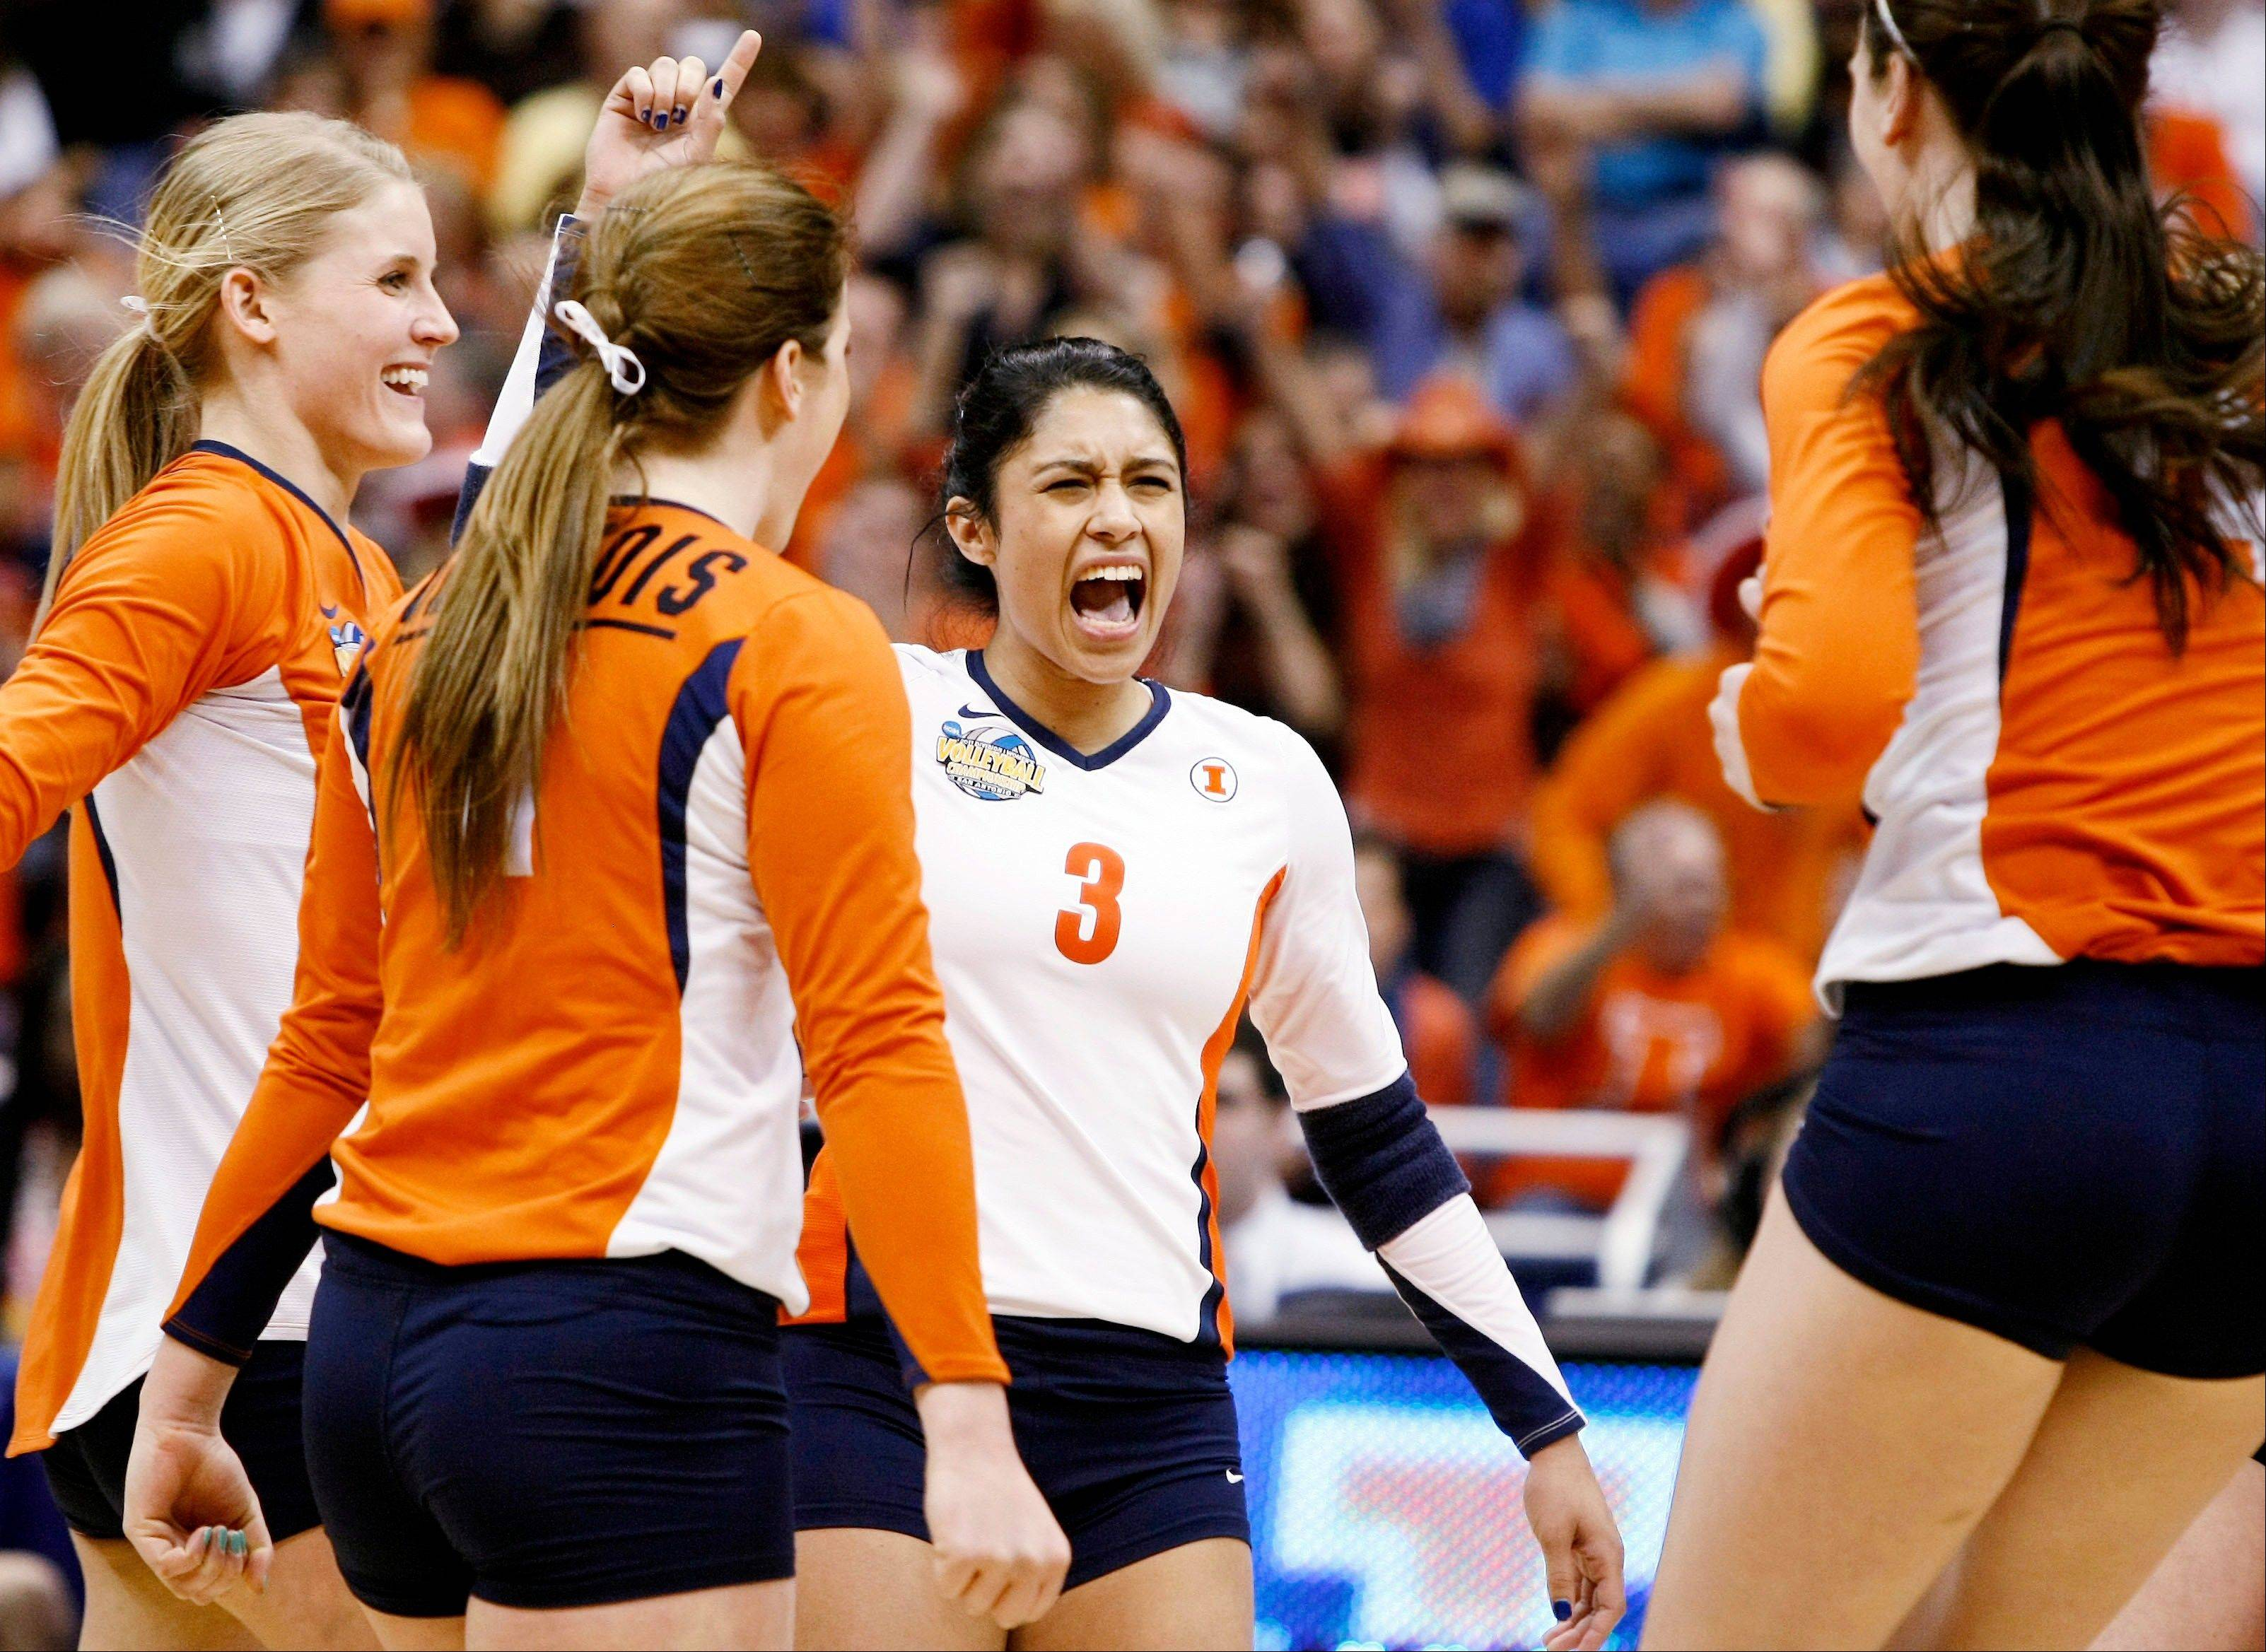 Illinois' Jennifer Beltran, center, celebrates a point with teammates Colleen Ward, left, Annie Luhrsen and Liz McMahon, right, during the NCAA championship match against UCLA. The Illini fell 3-1 but finished as national runners-up for the first time.